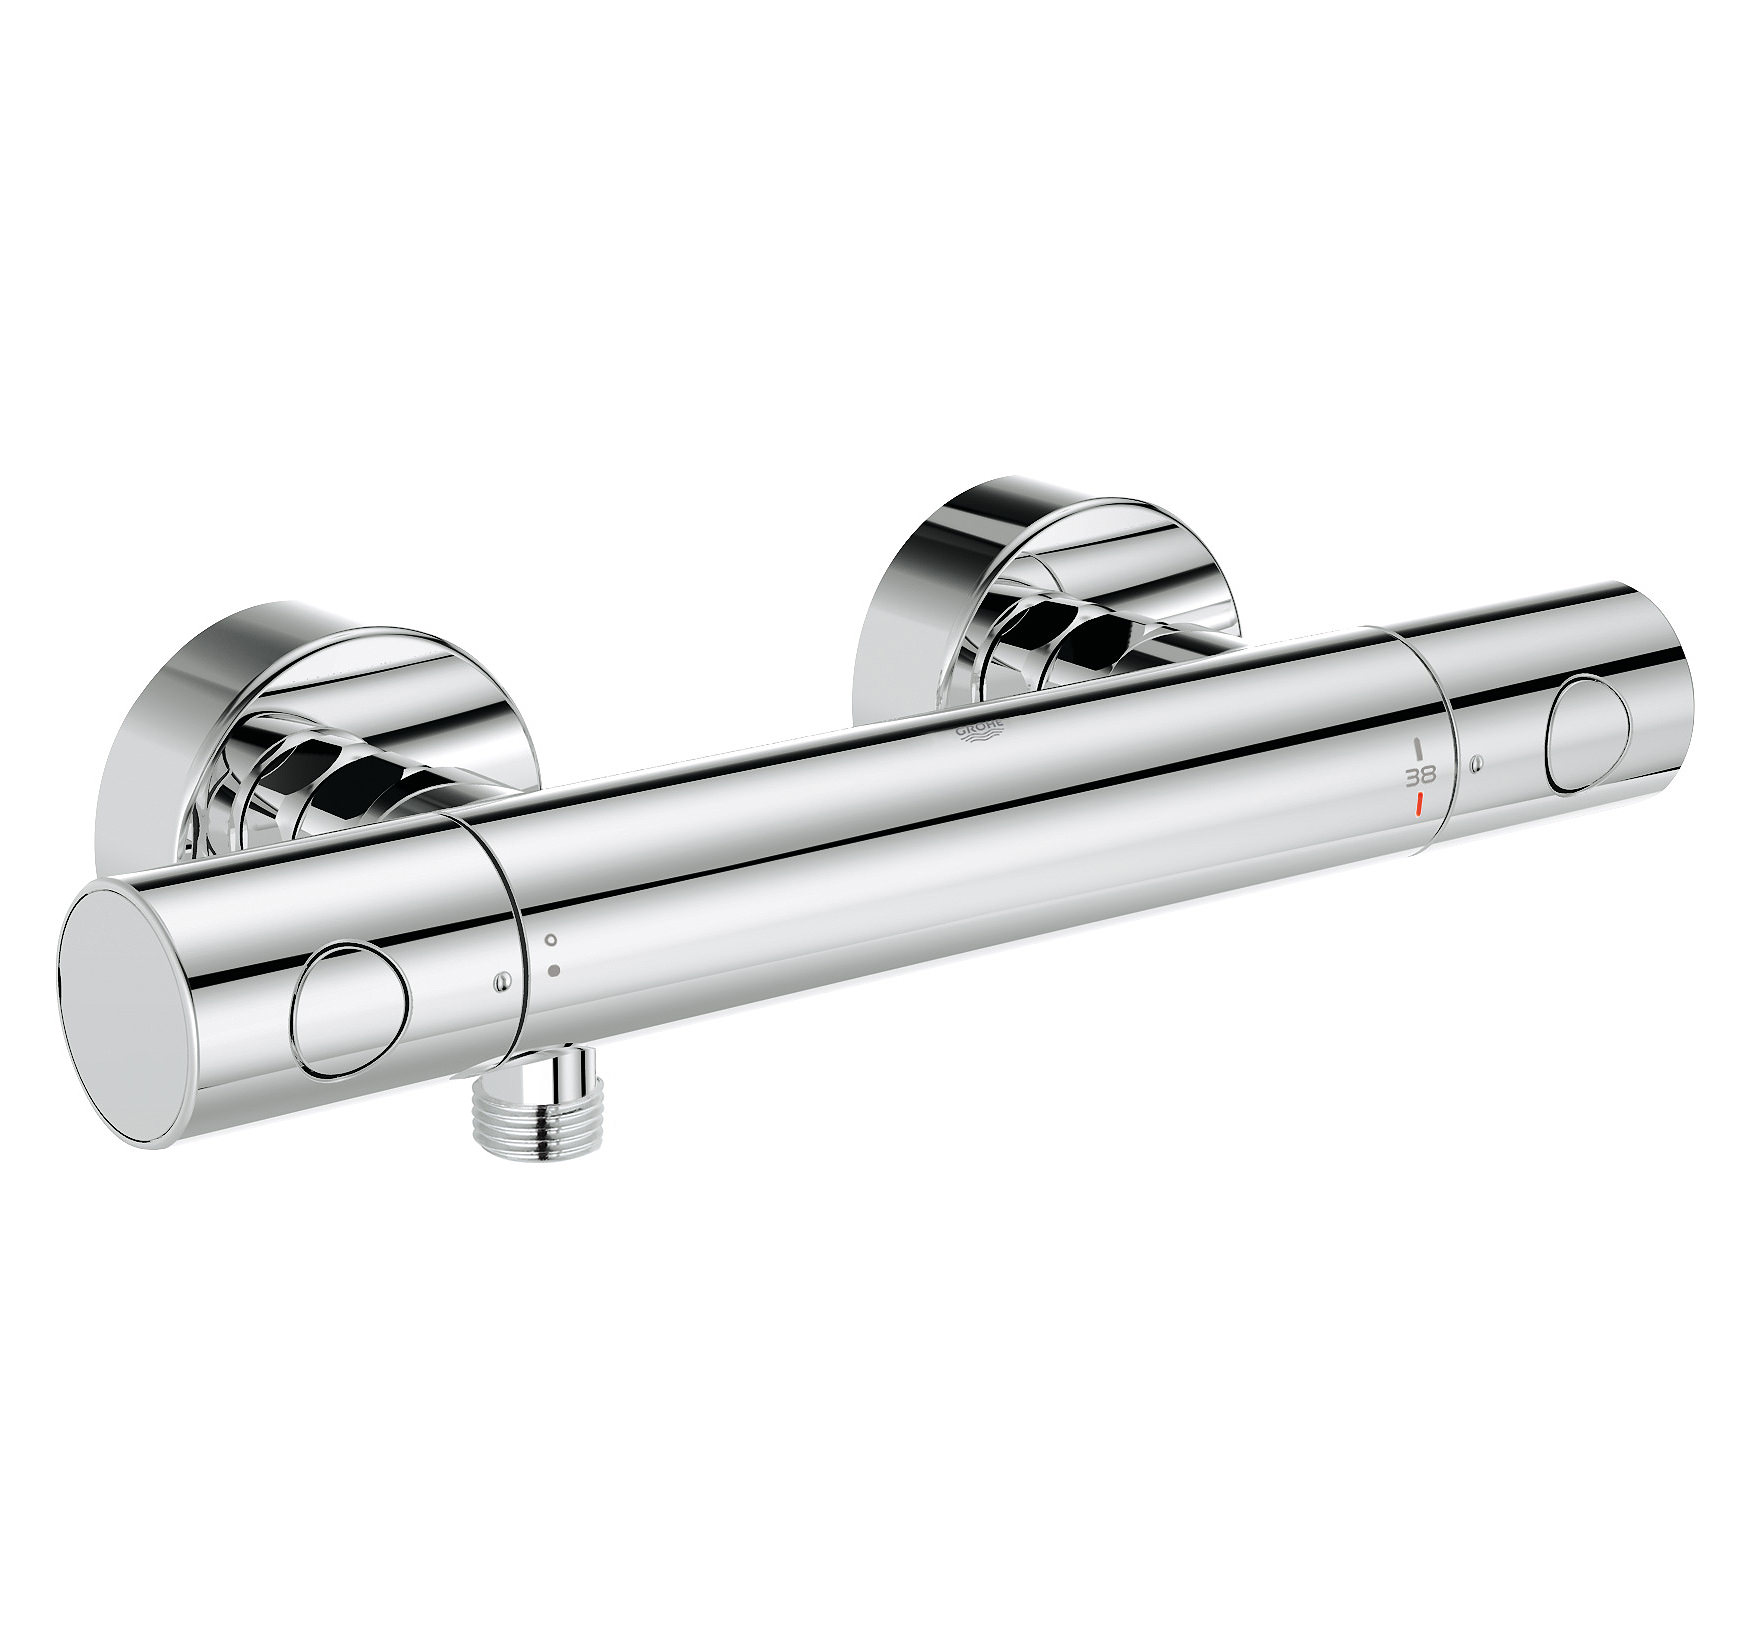 Grohe Grohtherm 1000 Cosmopolitan Thermostatic Shower Mixer Valve